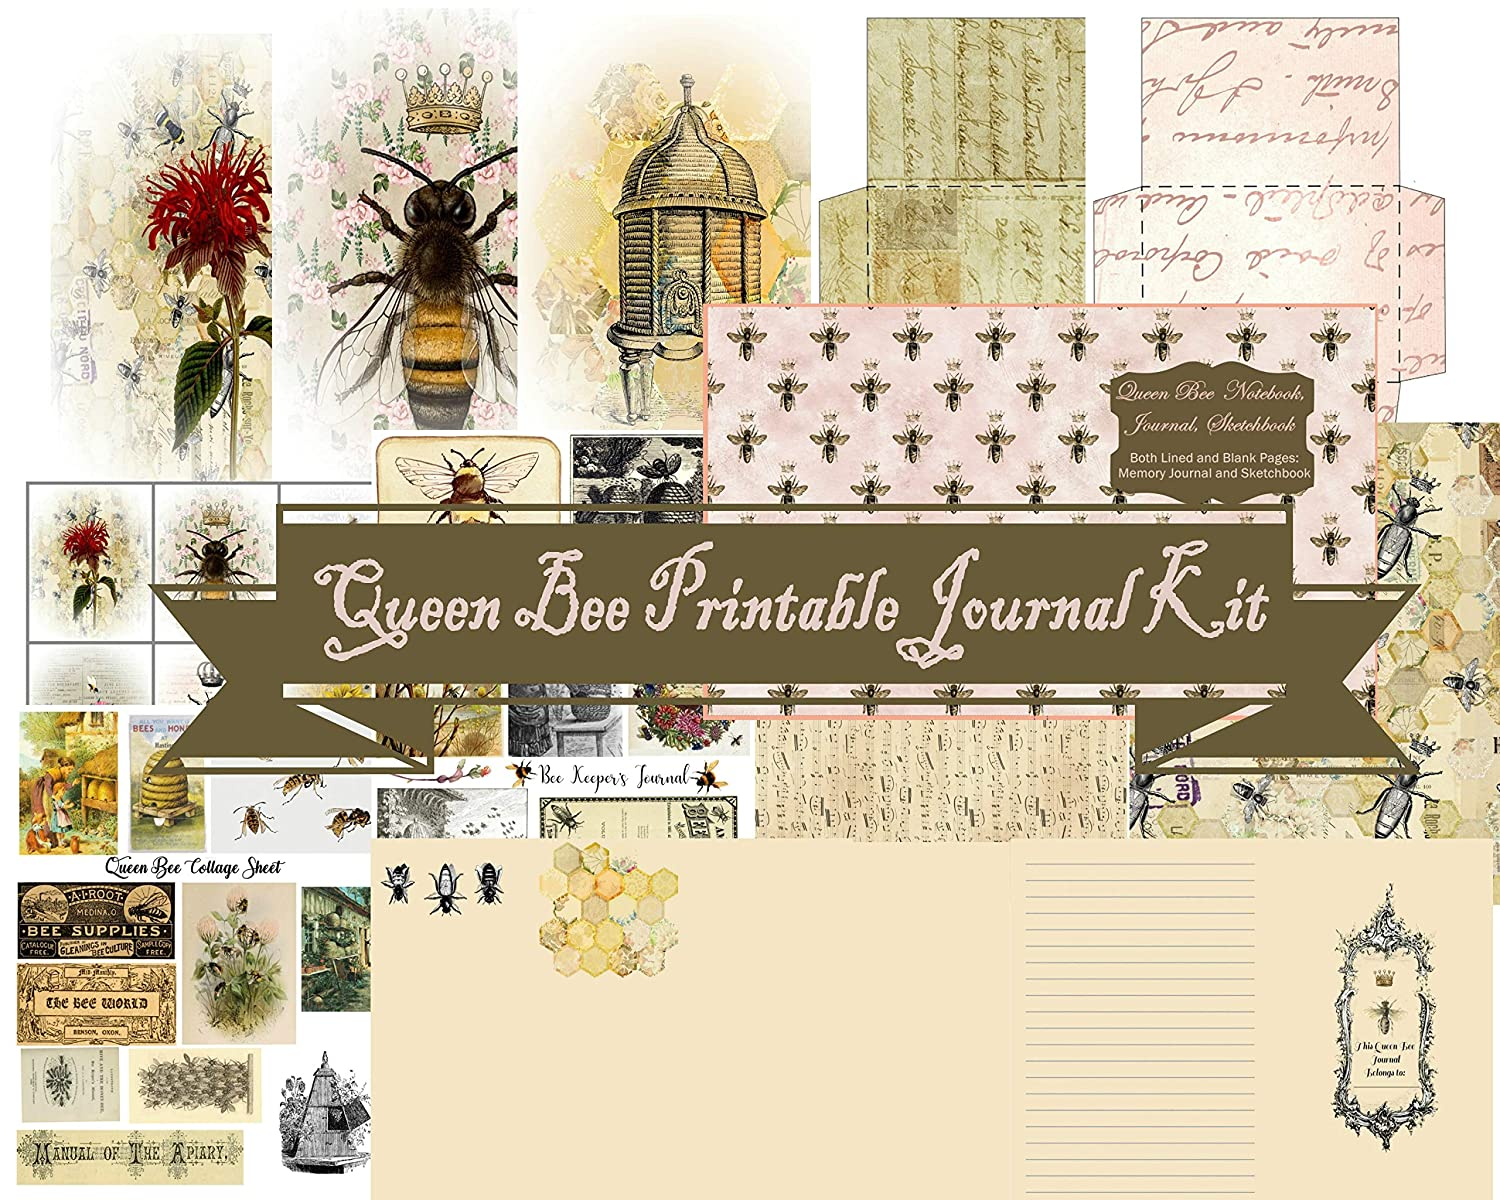 Queen Bee Printable Journaling Kit on CD: Notebook Diary Sketch Book DIY Journaling Kit 8.5 x 11 Printable PDF on CD Junk Journal